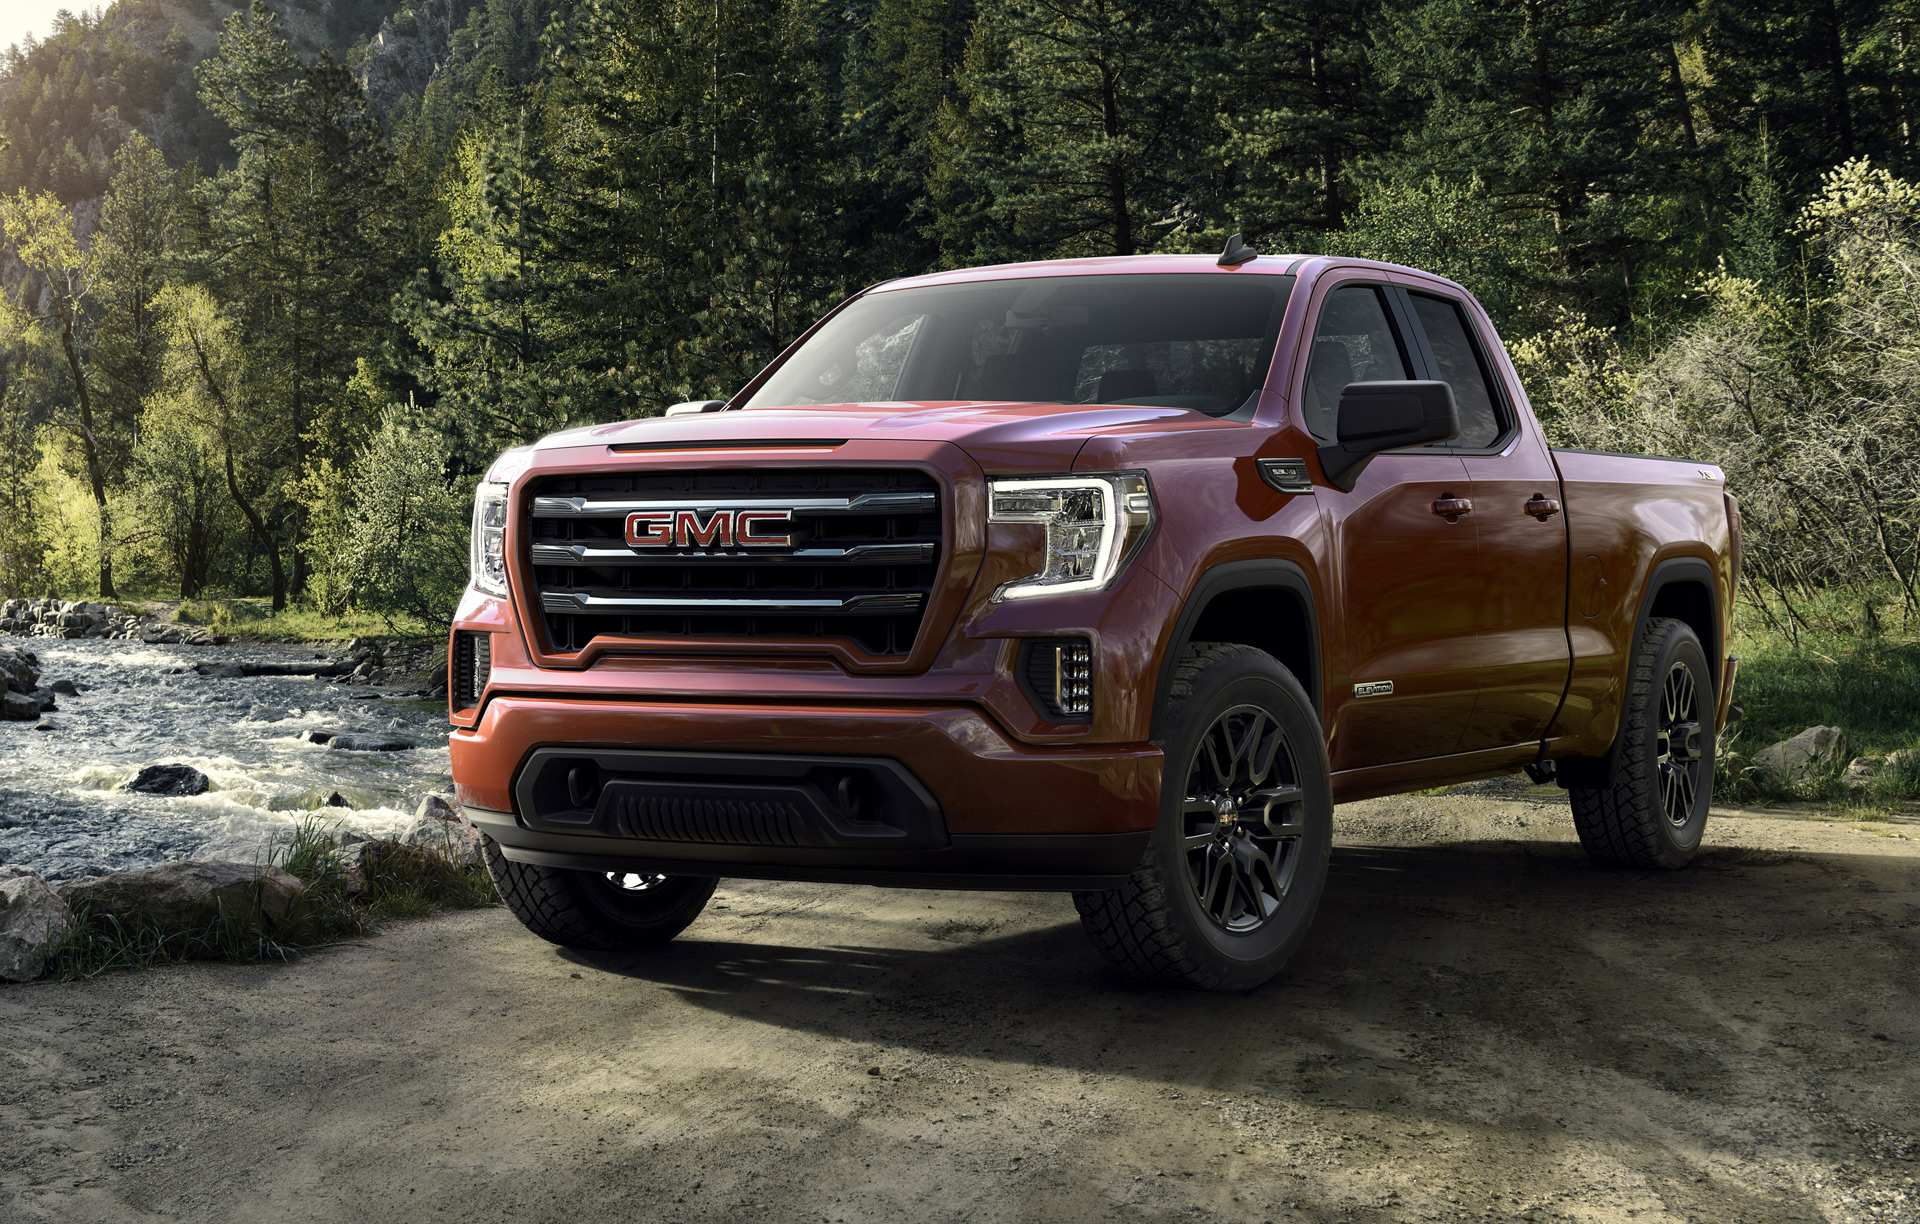 41 Best GMC Elevation 2020 Specs And Review